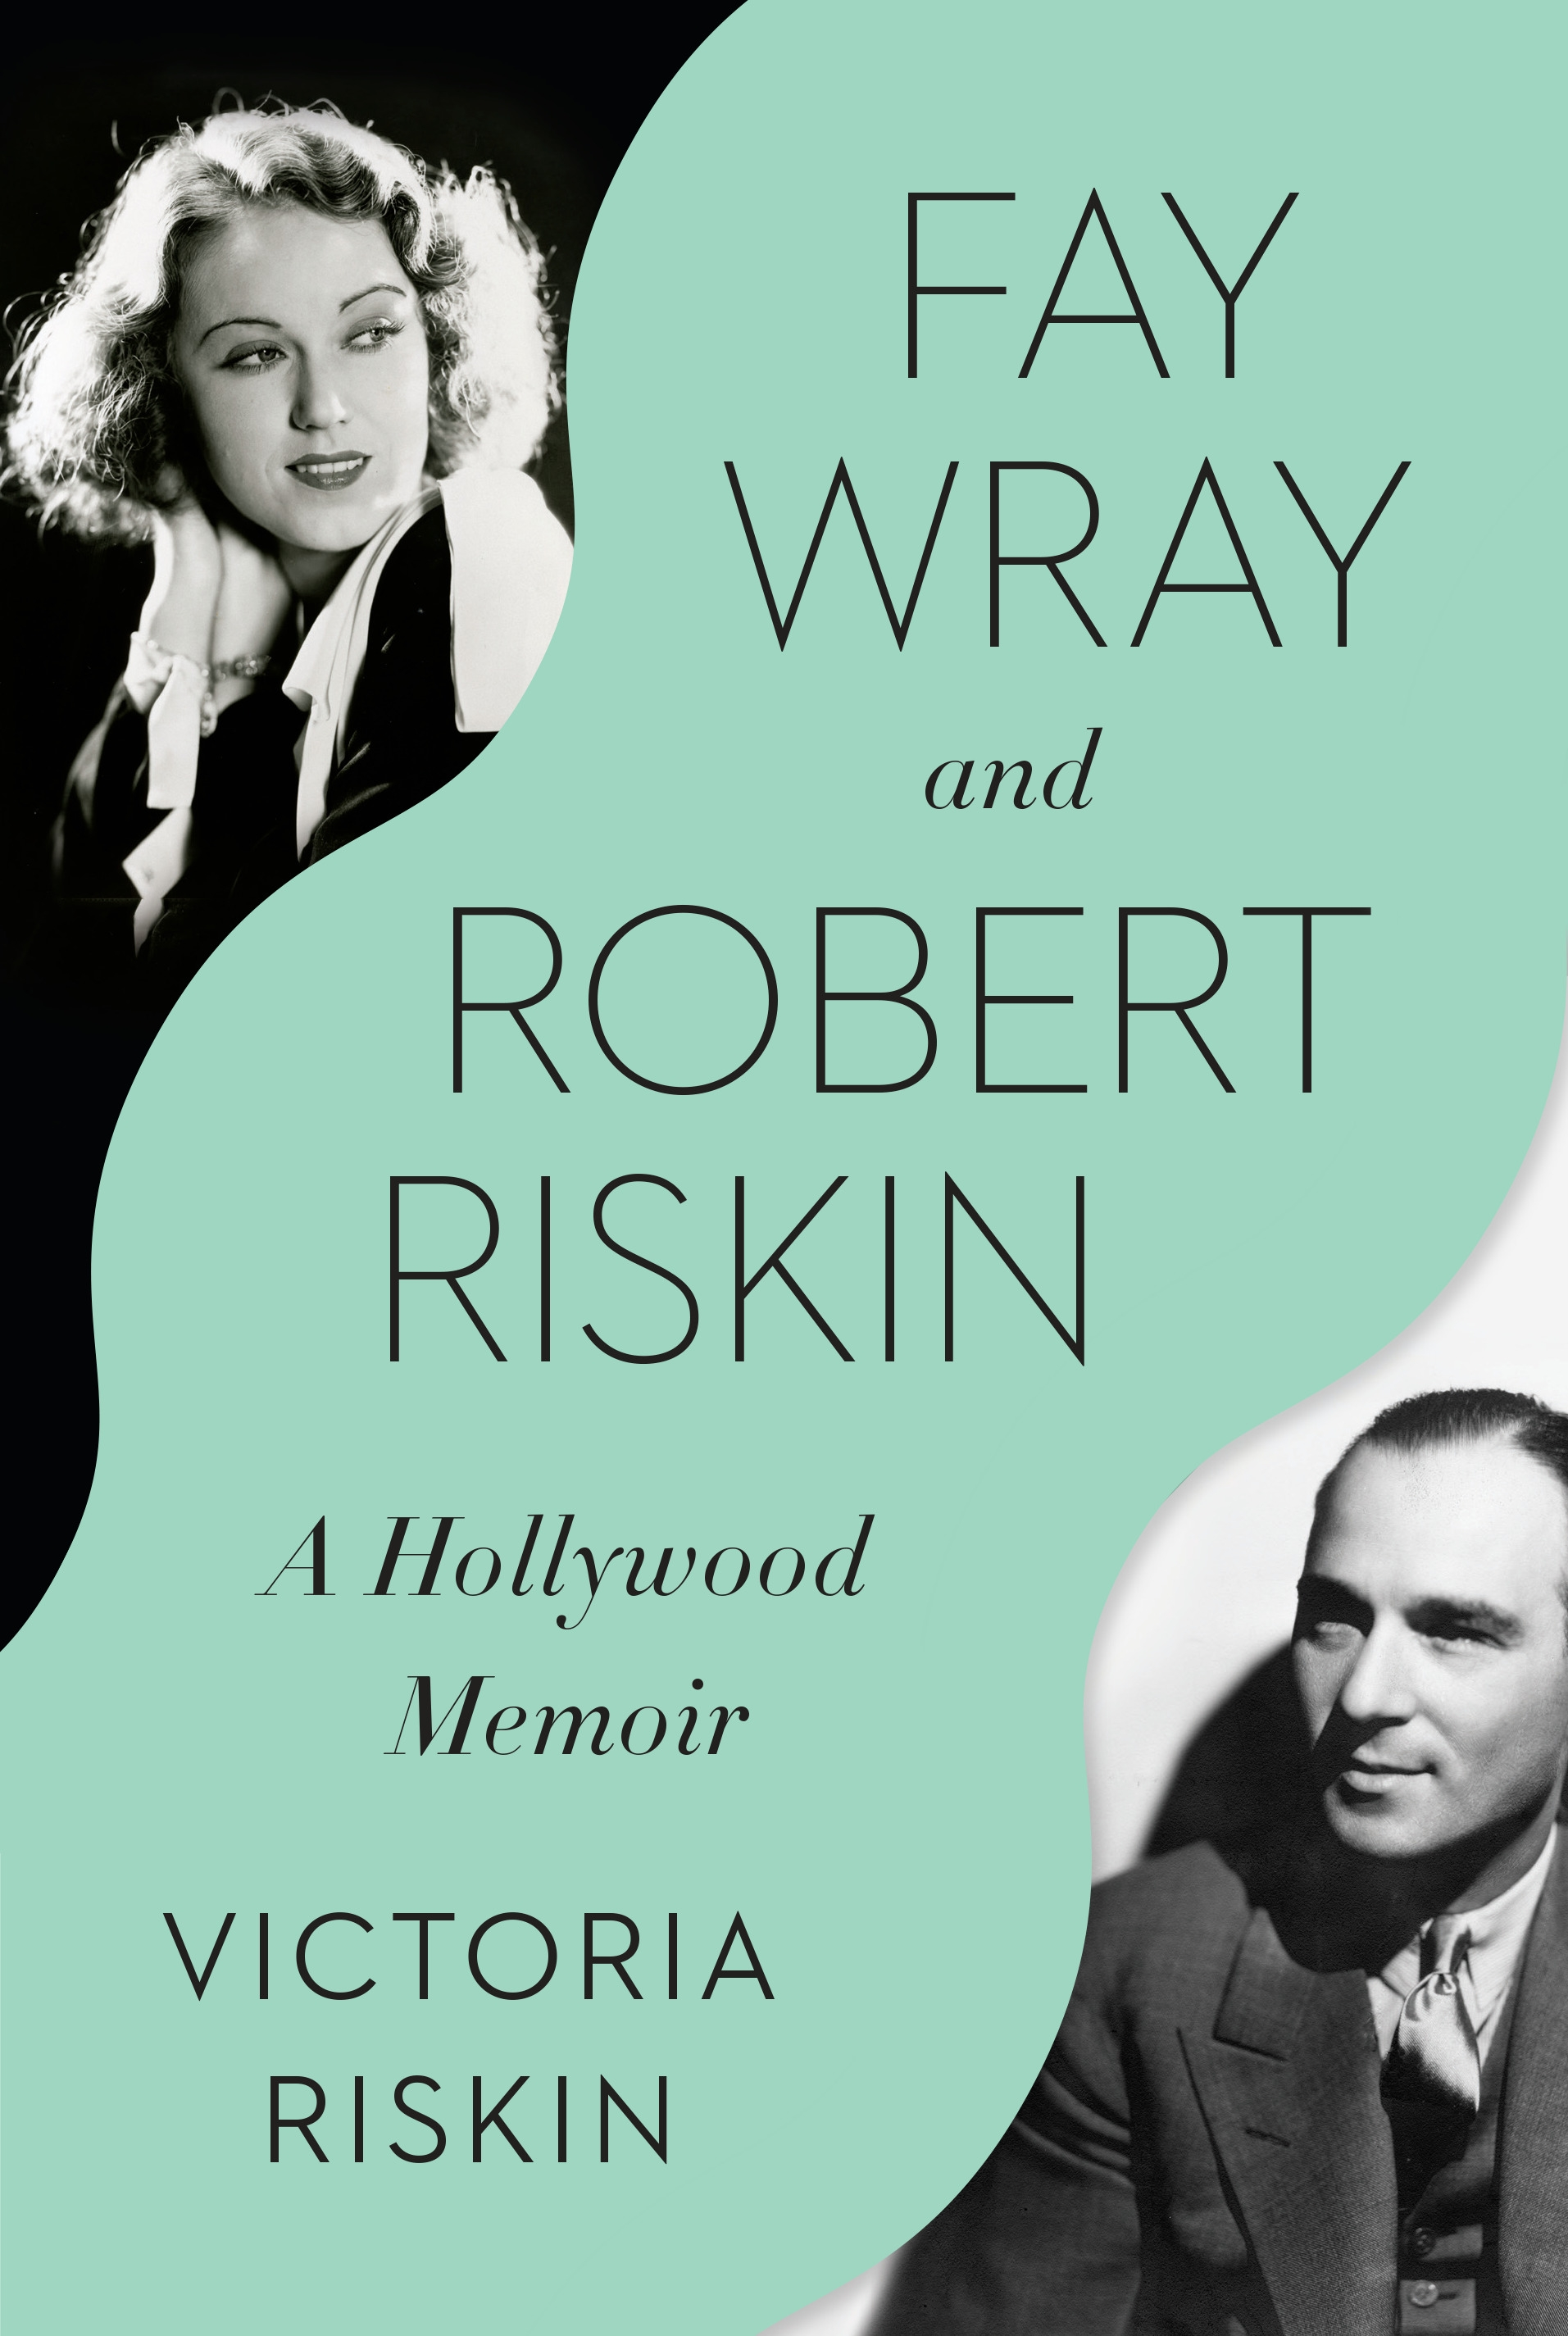 Image result for fay wray and robert riskin book